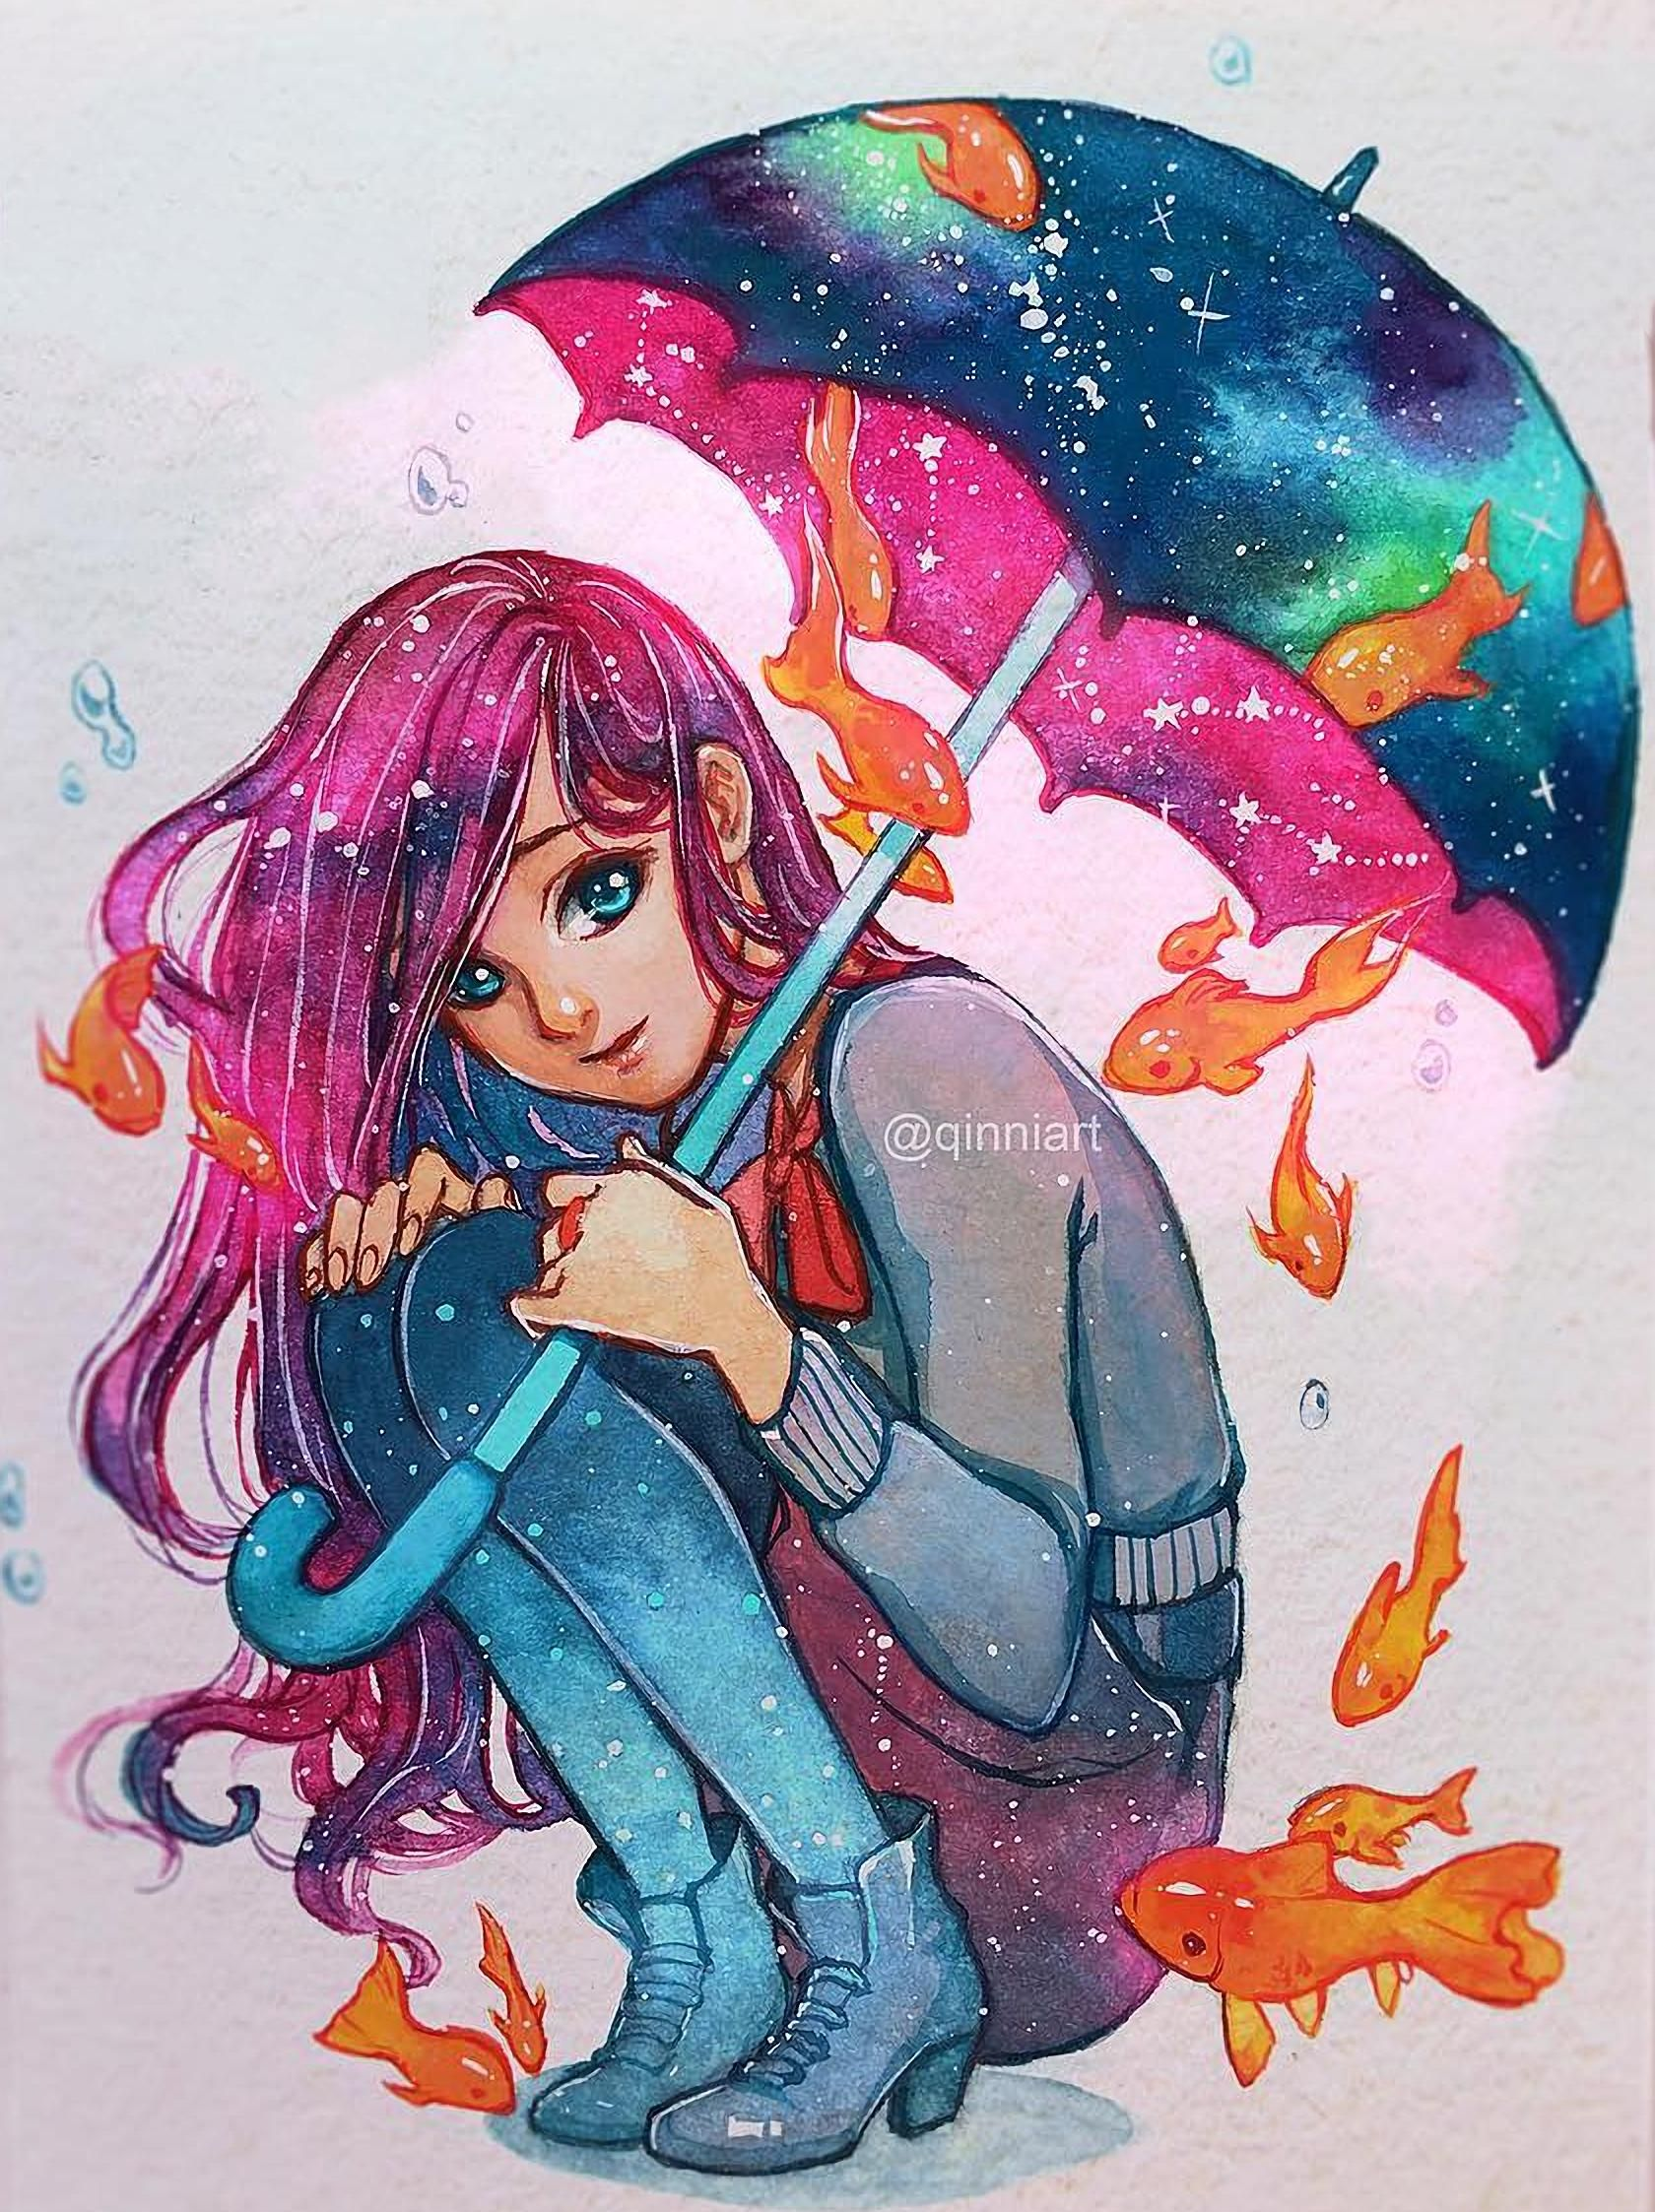 Cool Art The Most Awesome Images On The Internet Rain